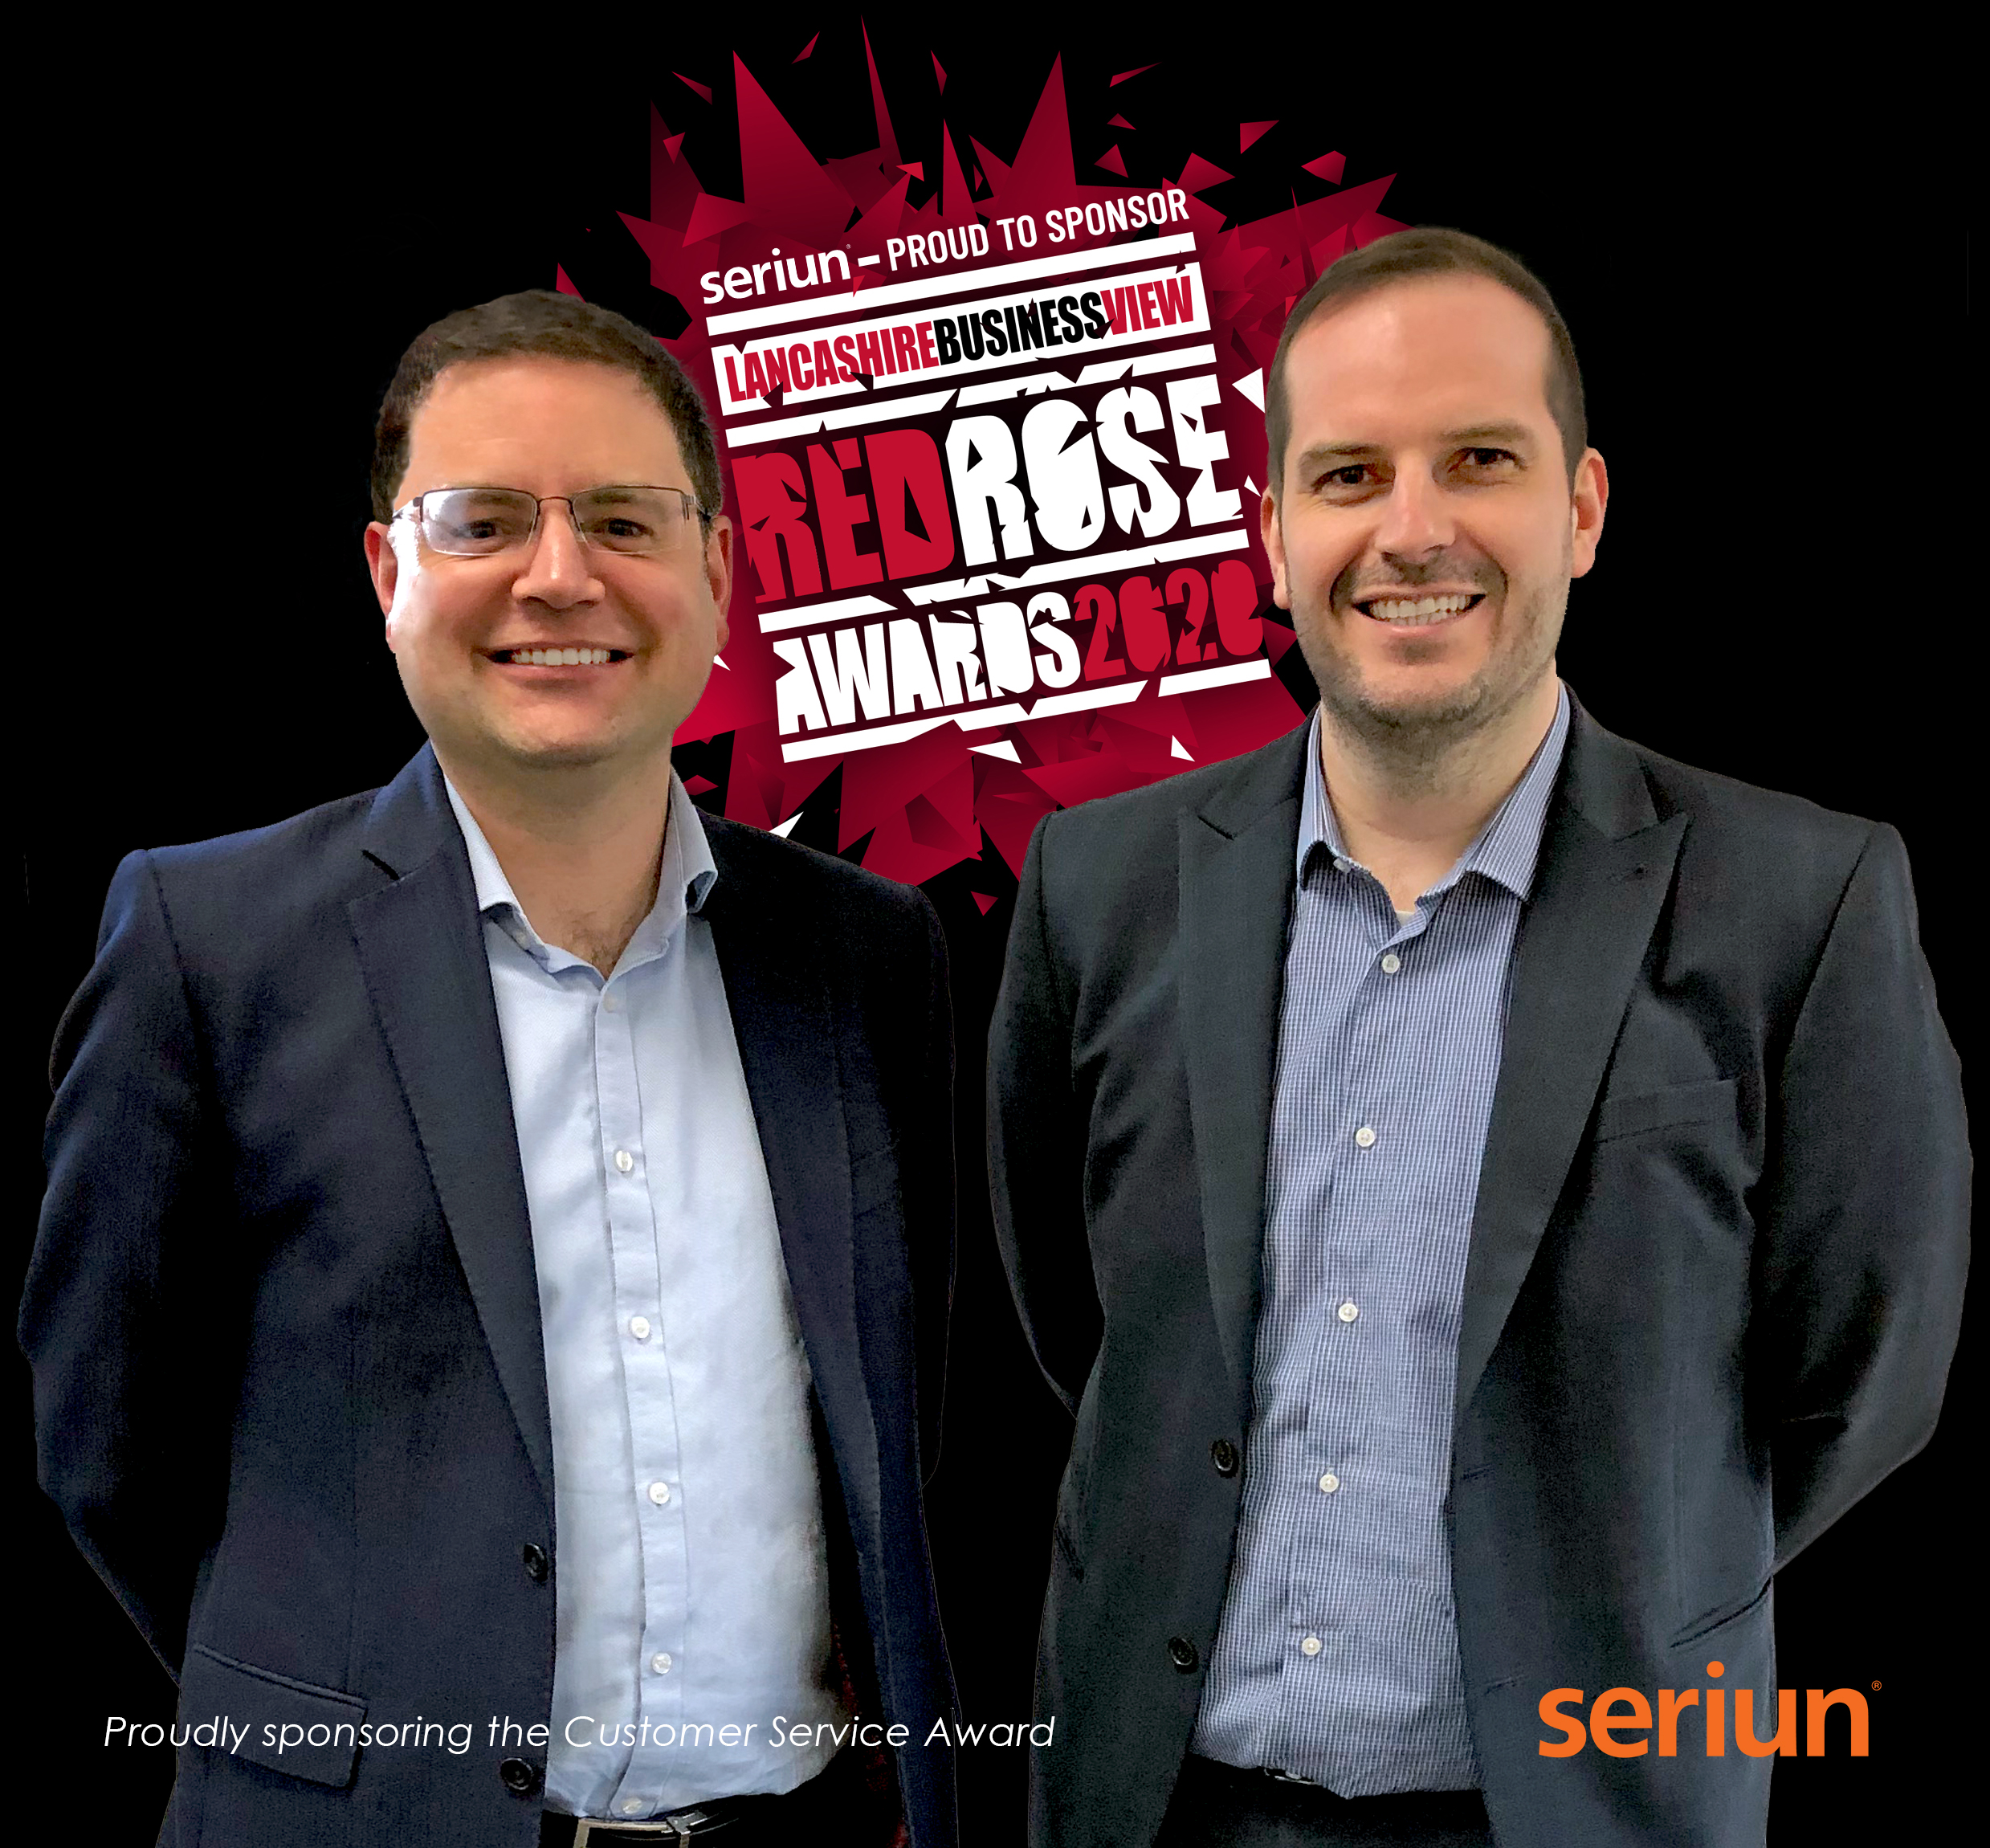 Seriun Sponsor Red Rose Customer Service Award